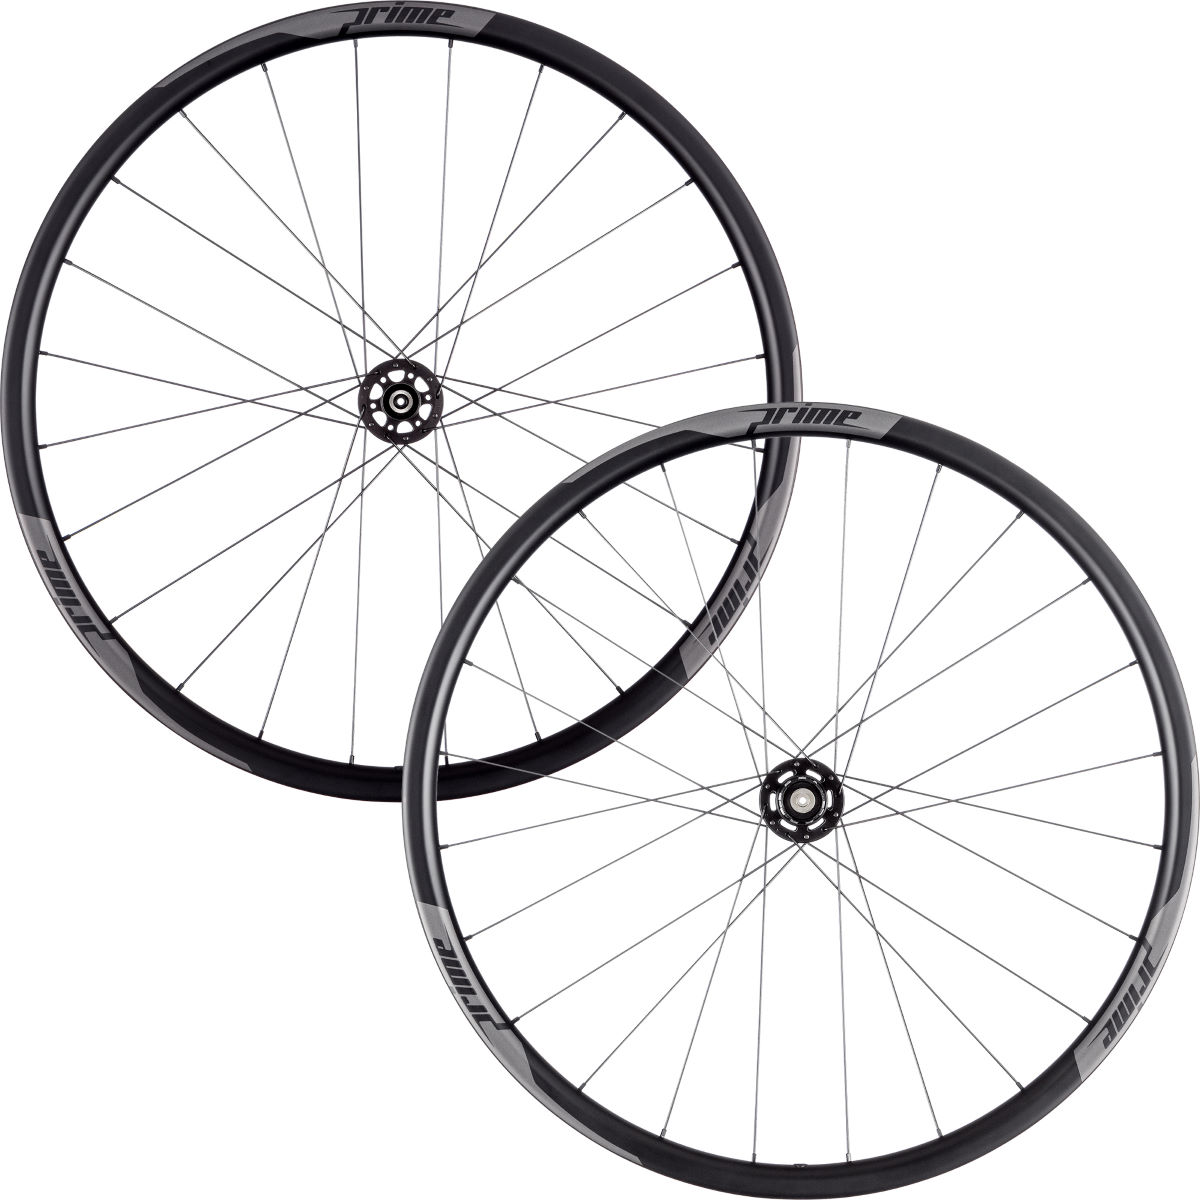 Prime RR-28 Carbon Clincher Disc Road Wheelset - 700c Shimano/SRAM Black Decal Roues performance